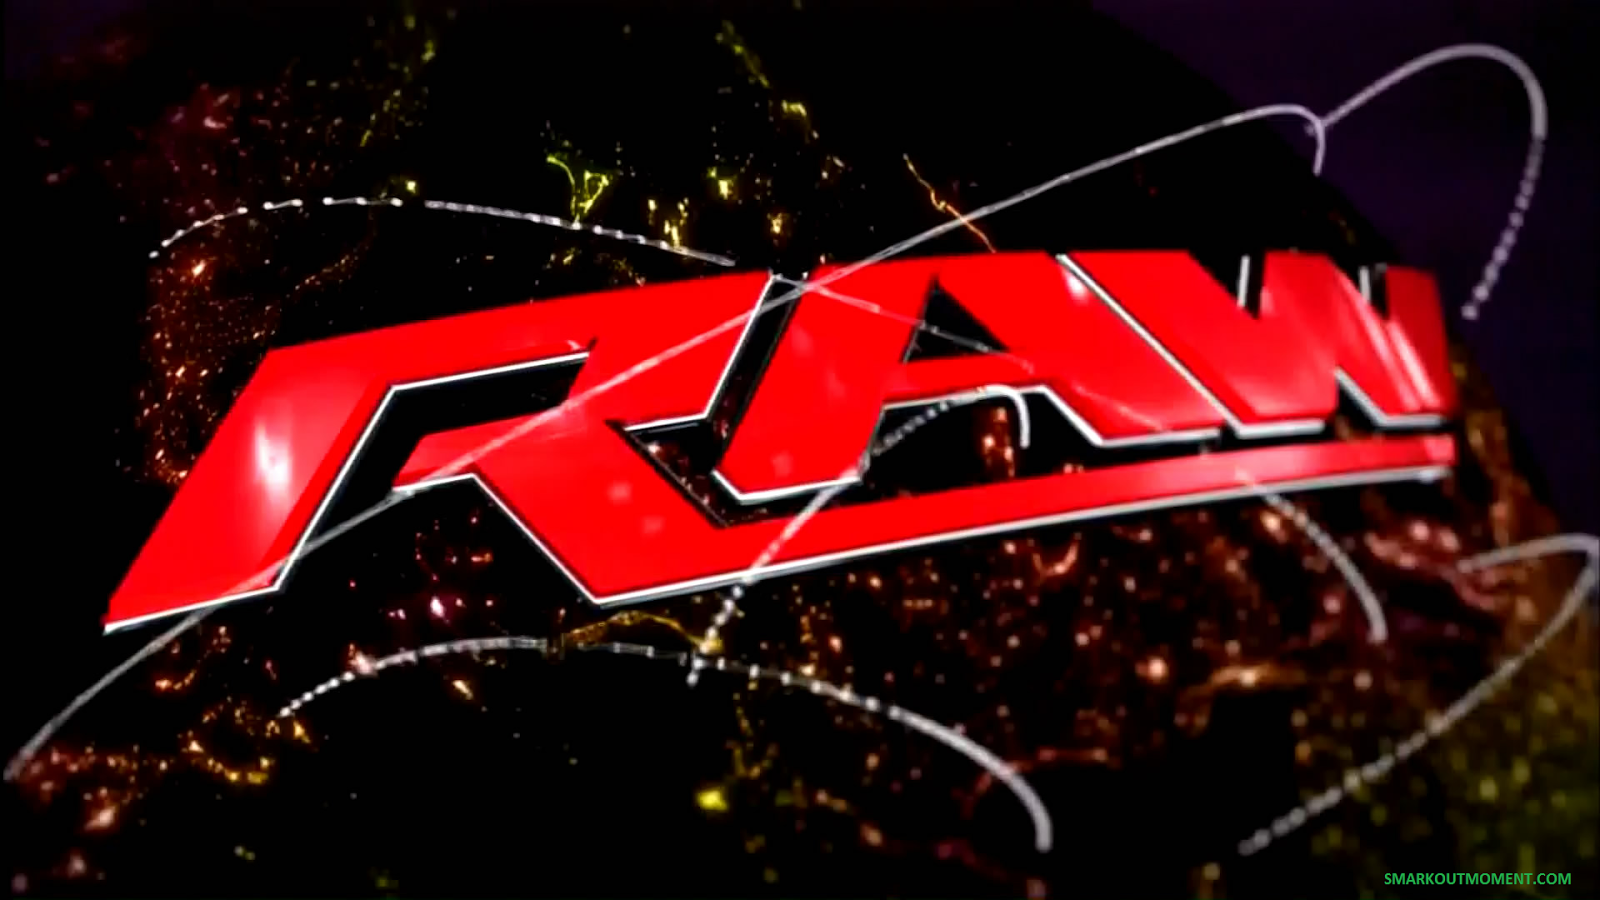 Why wwe superstars and main event are pointless tv shows - Monday night raw images ...